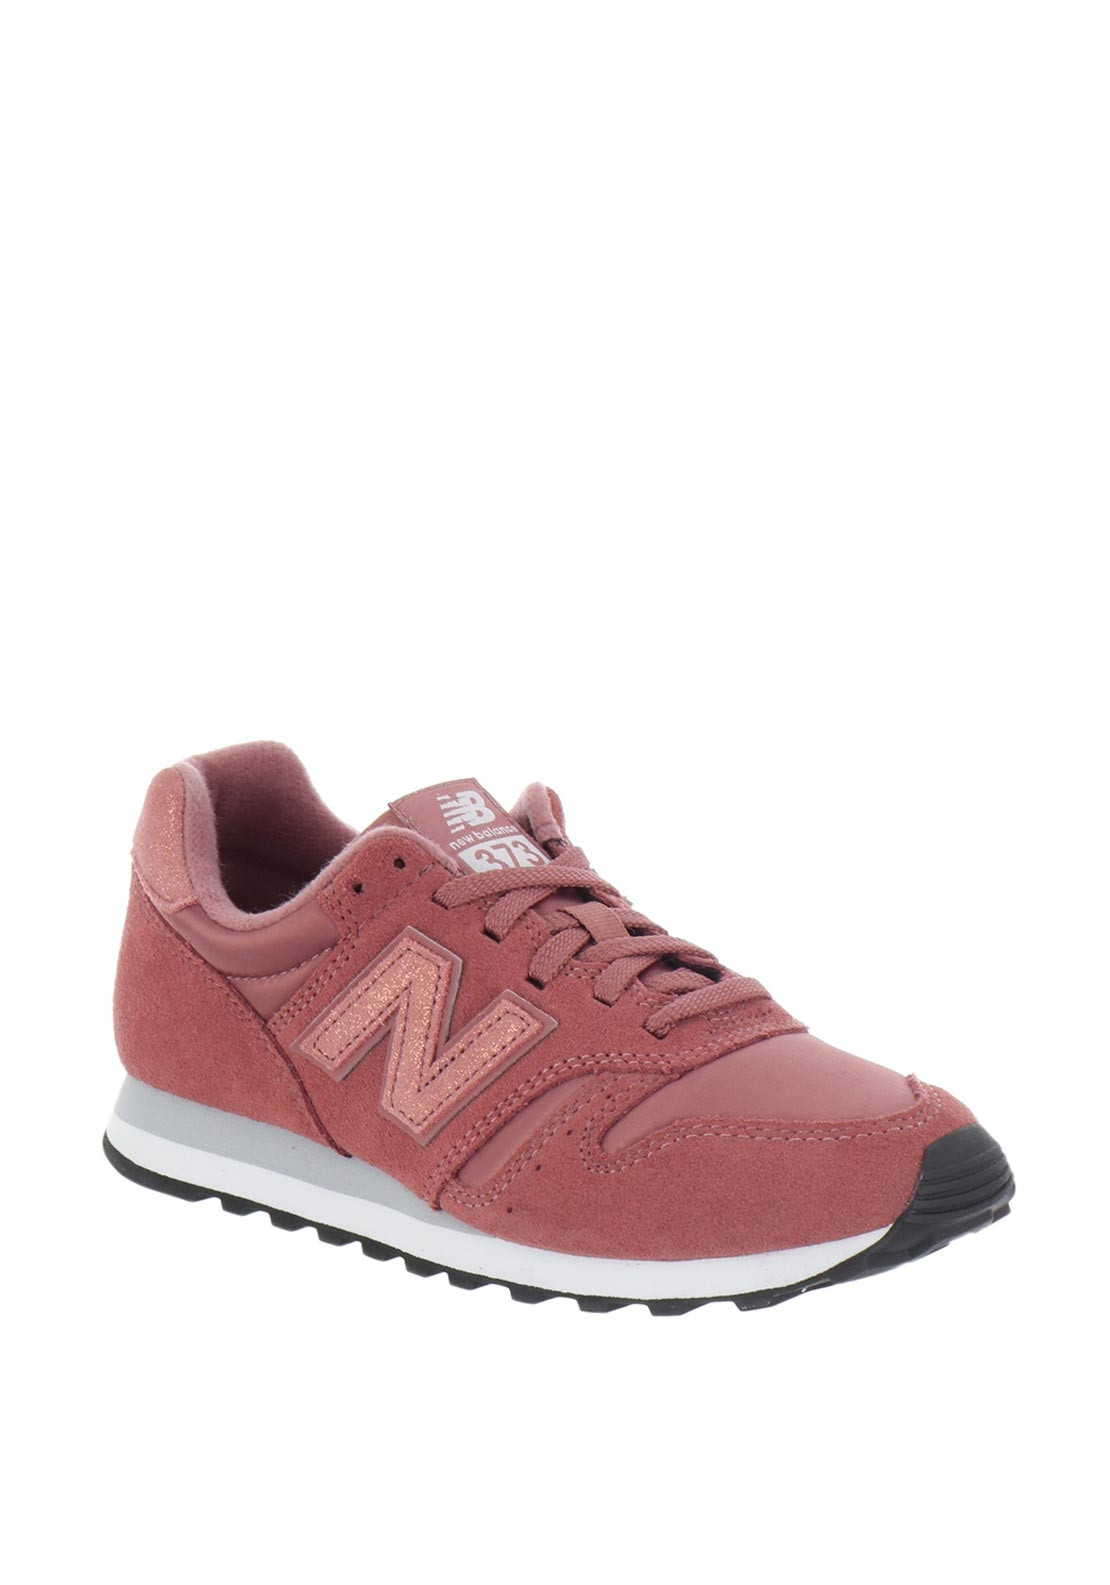 new style 1075a 15279 New Balance Womens 373 Suede Mix Trainers, Pink. Be the first to review  this product